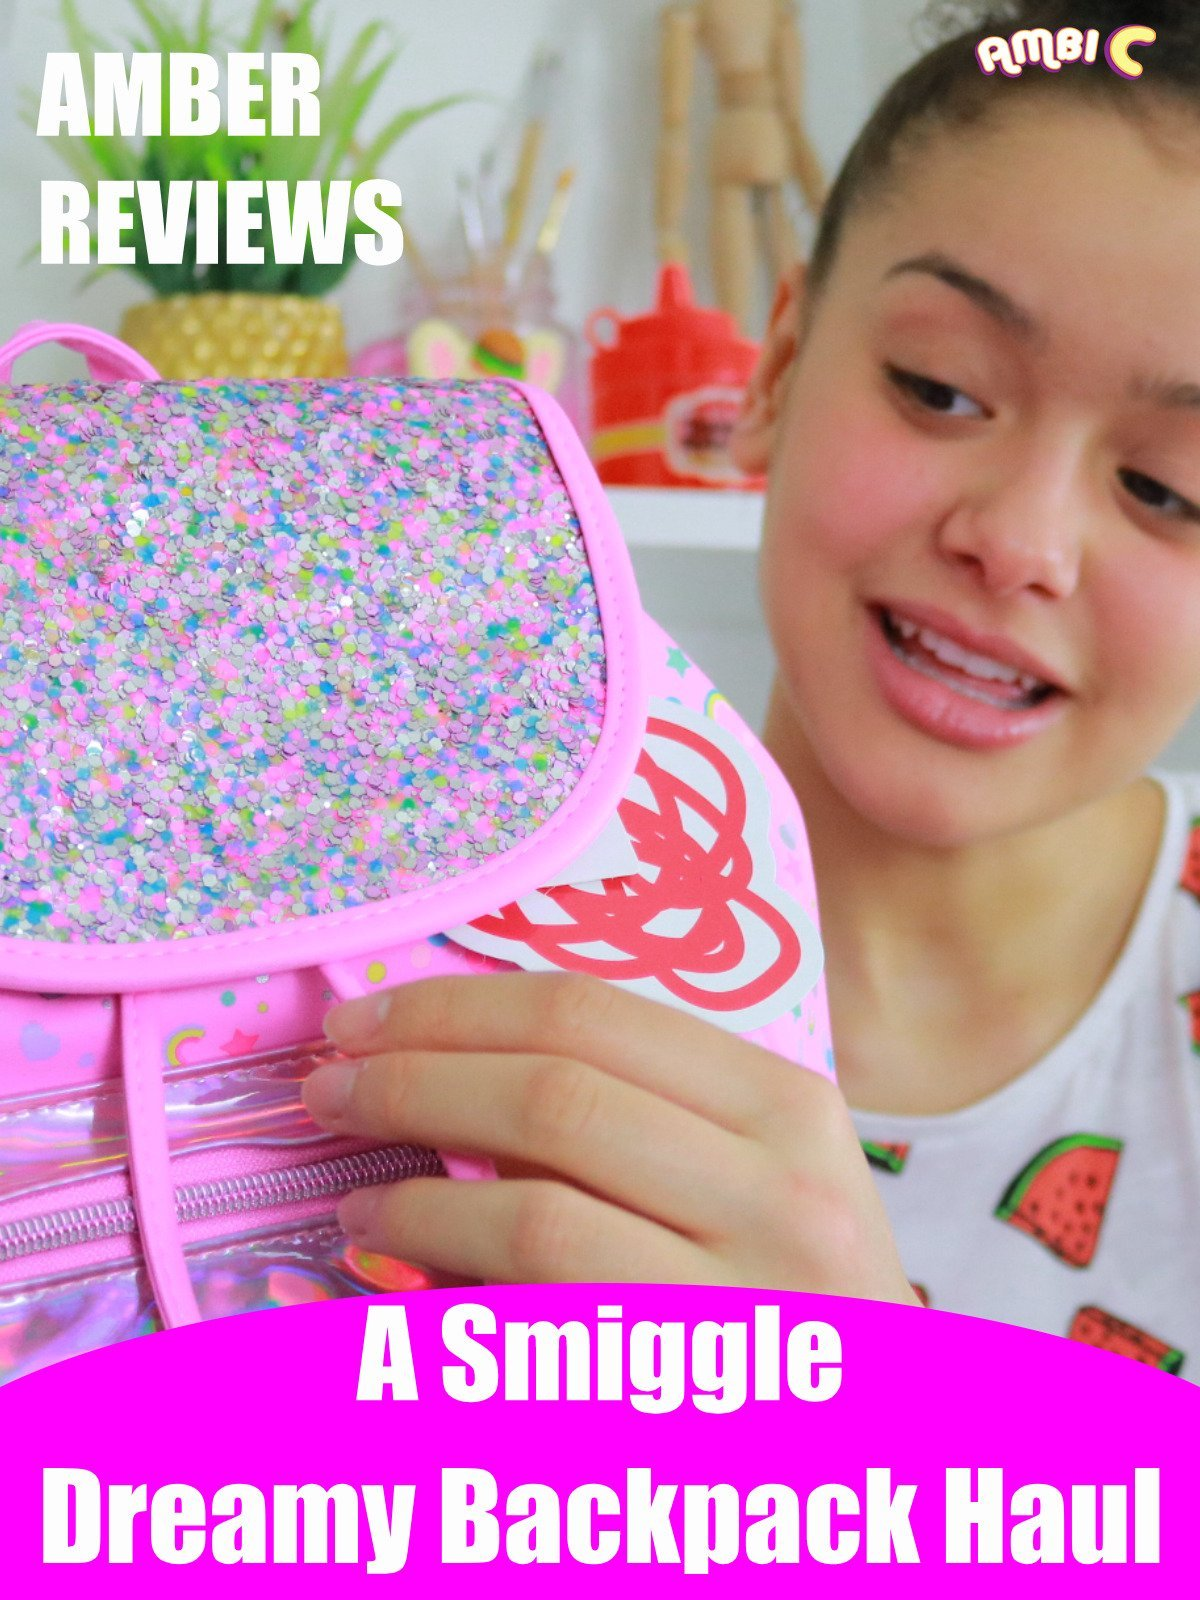 Amber Reviews a Dreamy Smiggle Backpack Haul